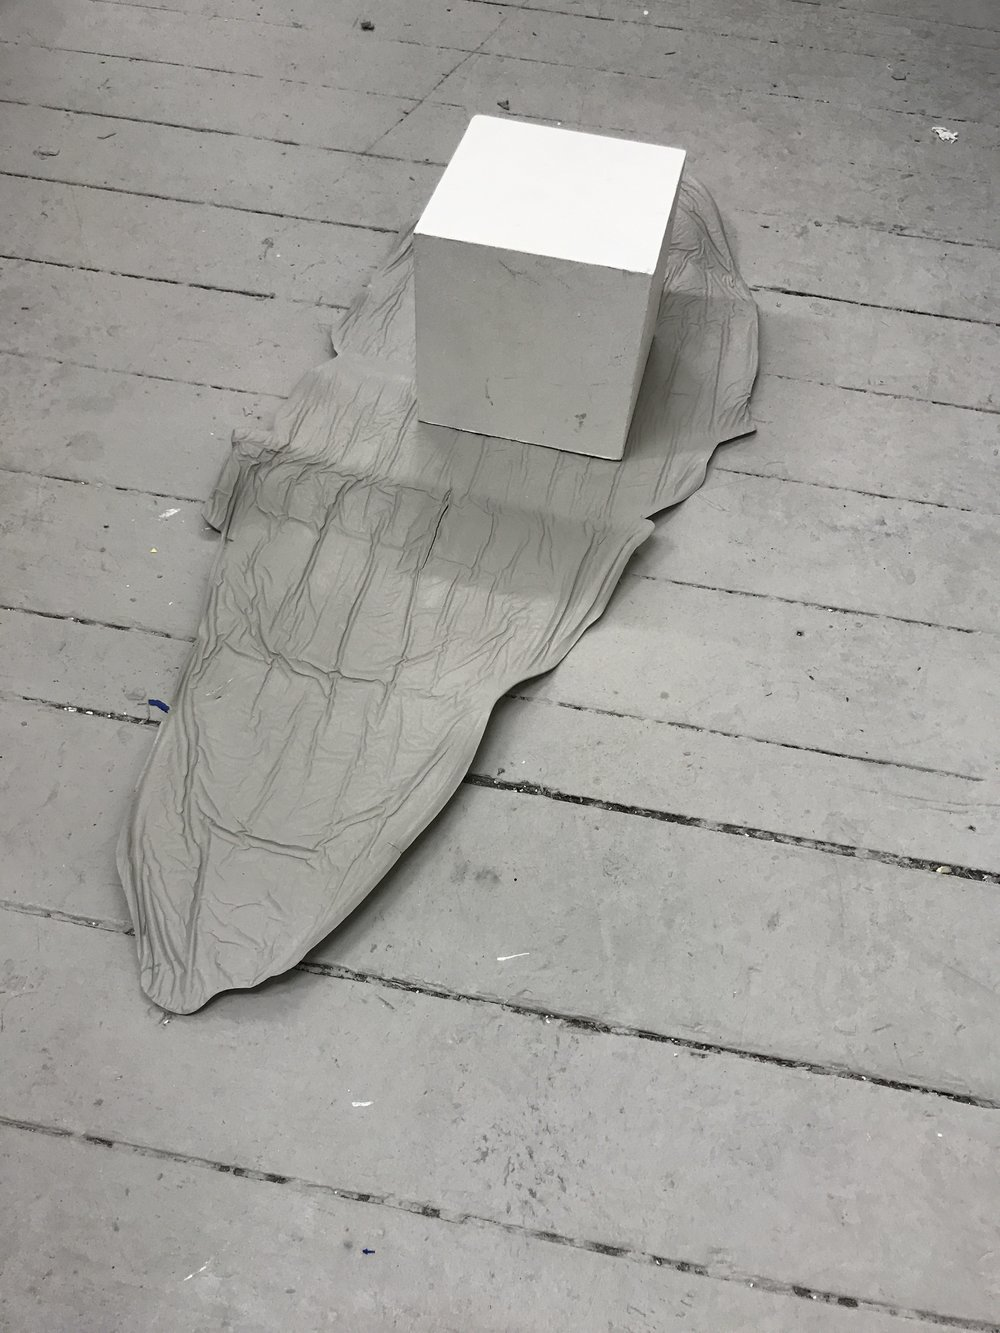 Ally McGinn (2017) [Studio documentation].  The white cube and grey floor. A large paint skin, made on the floorboards, reflecting the shape of the floor in the form. The white cube is a bit of an obvious reference but nonetheless is aesthetically pleasing.